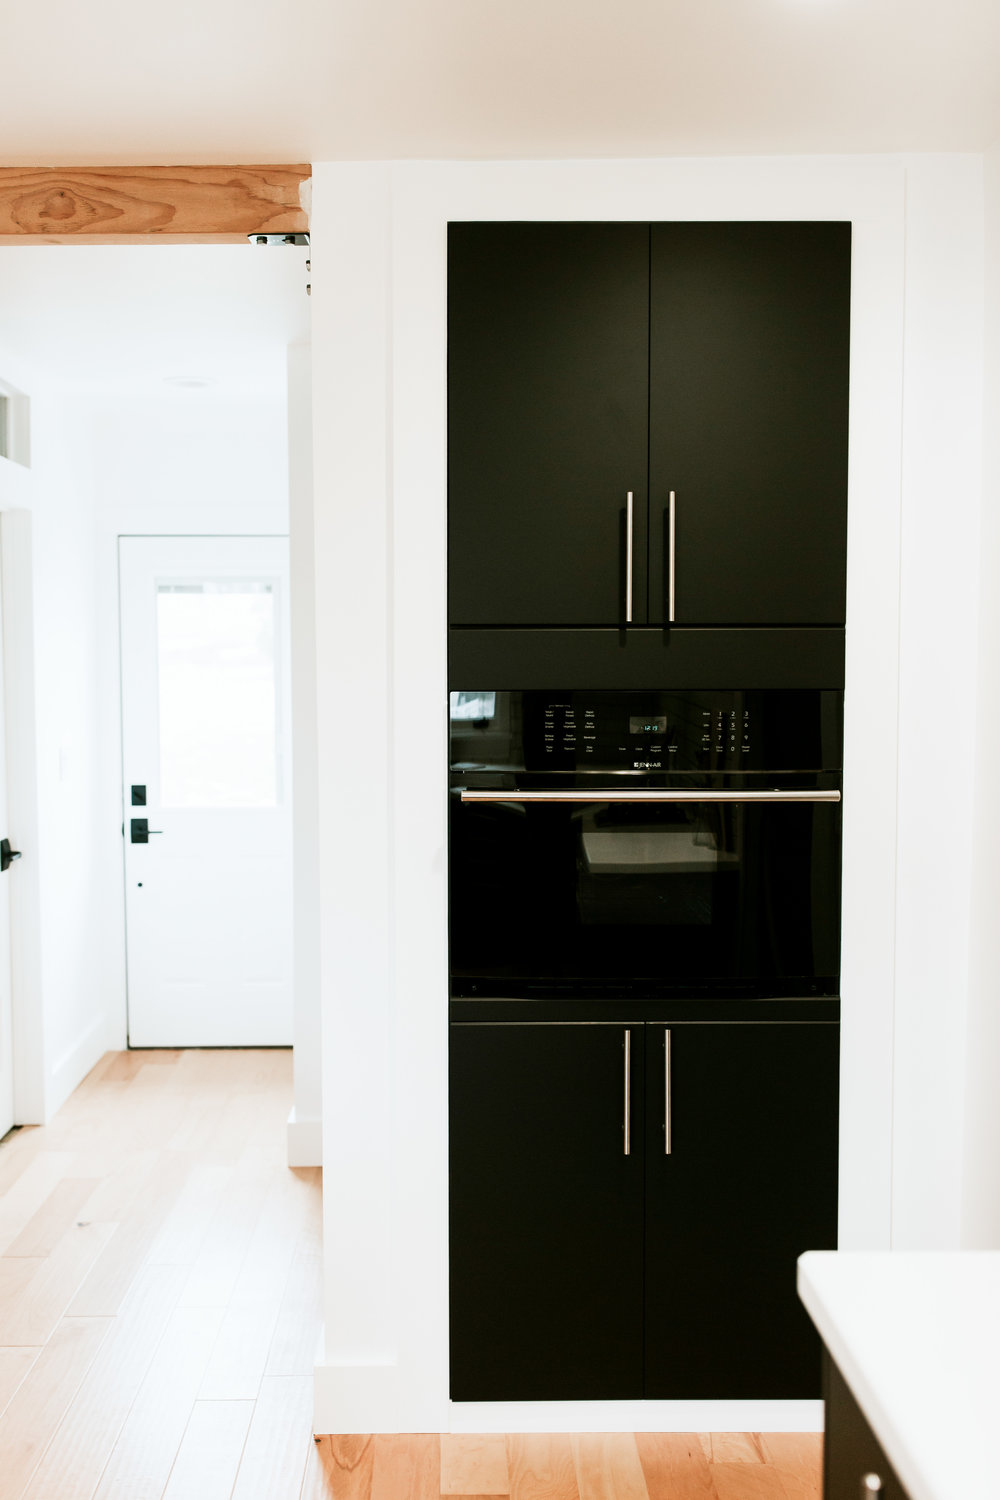 Full modern kitchen tour - Ikea Kungsbacka cabinets, built in pantry, modern black microwave in wall